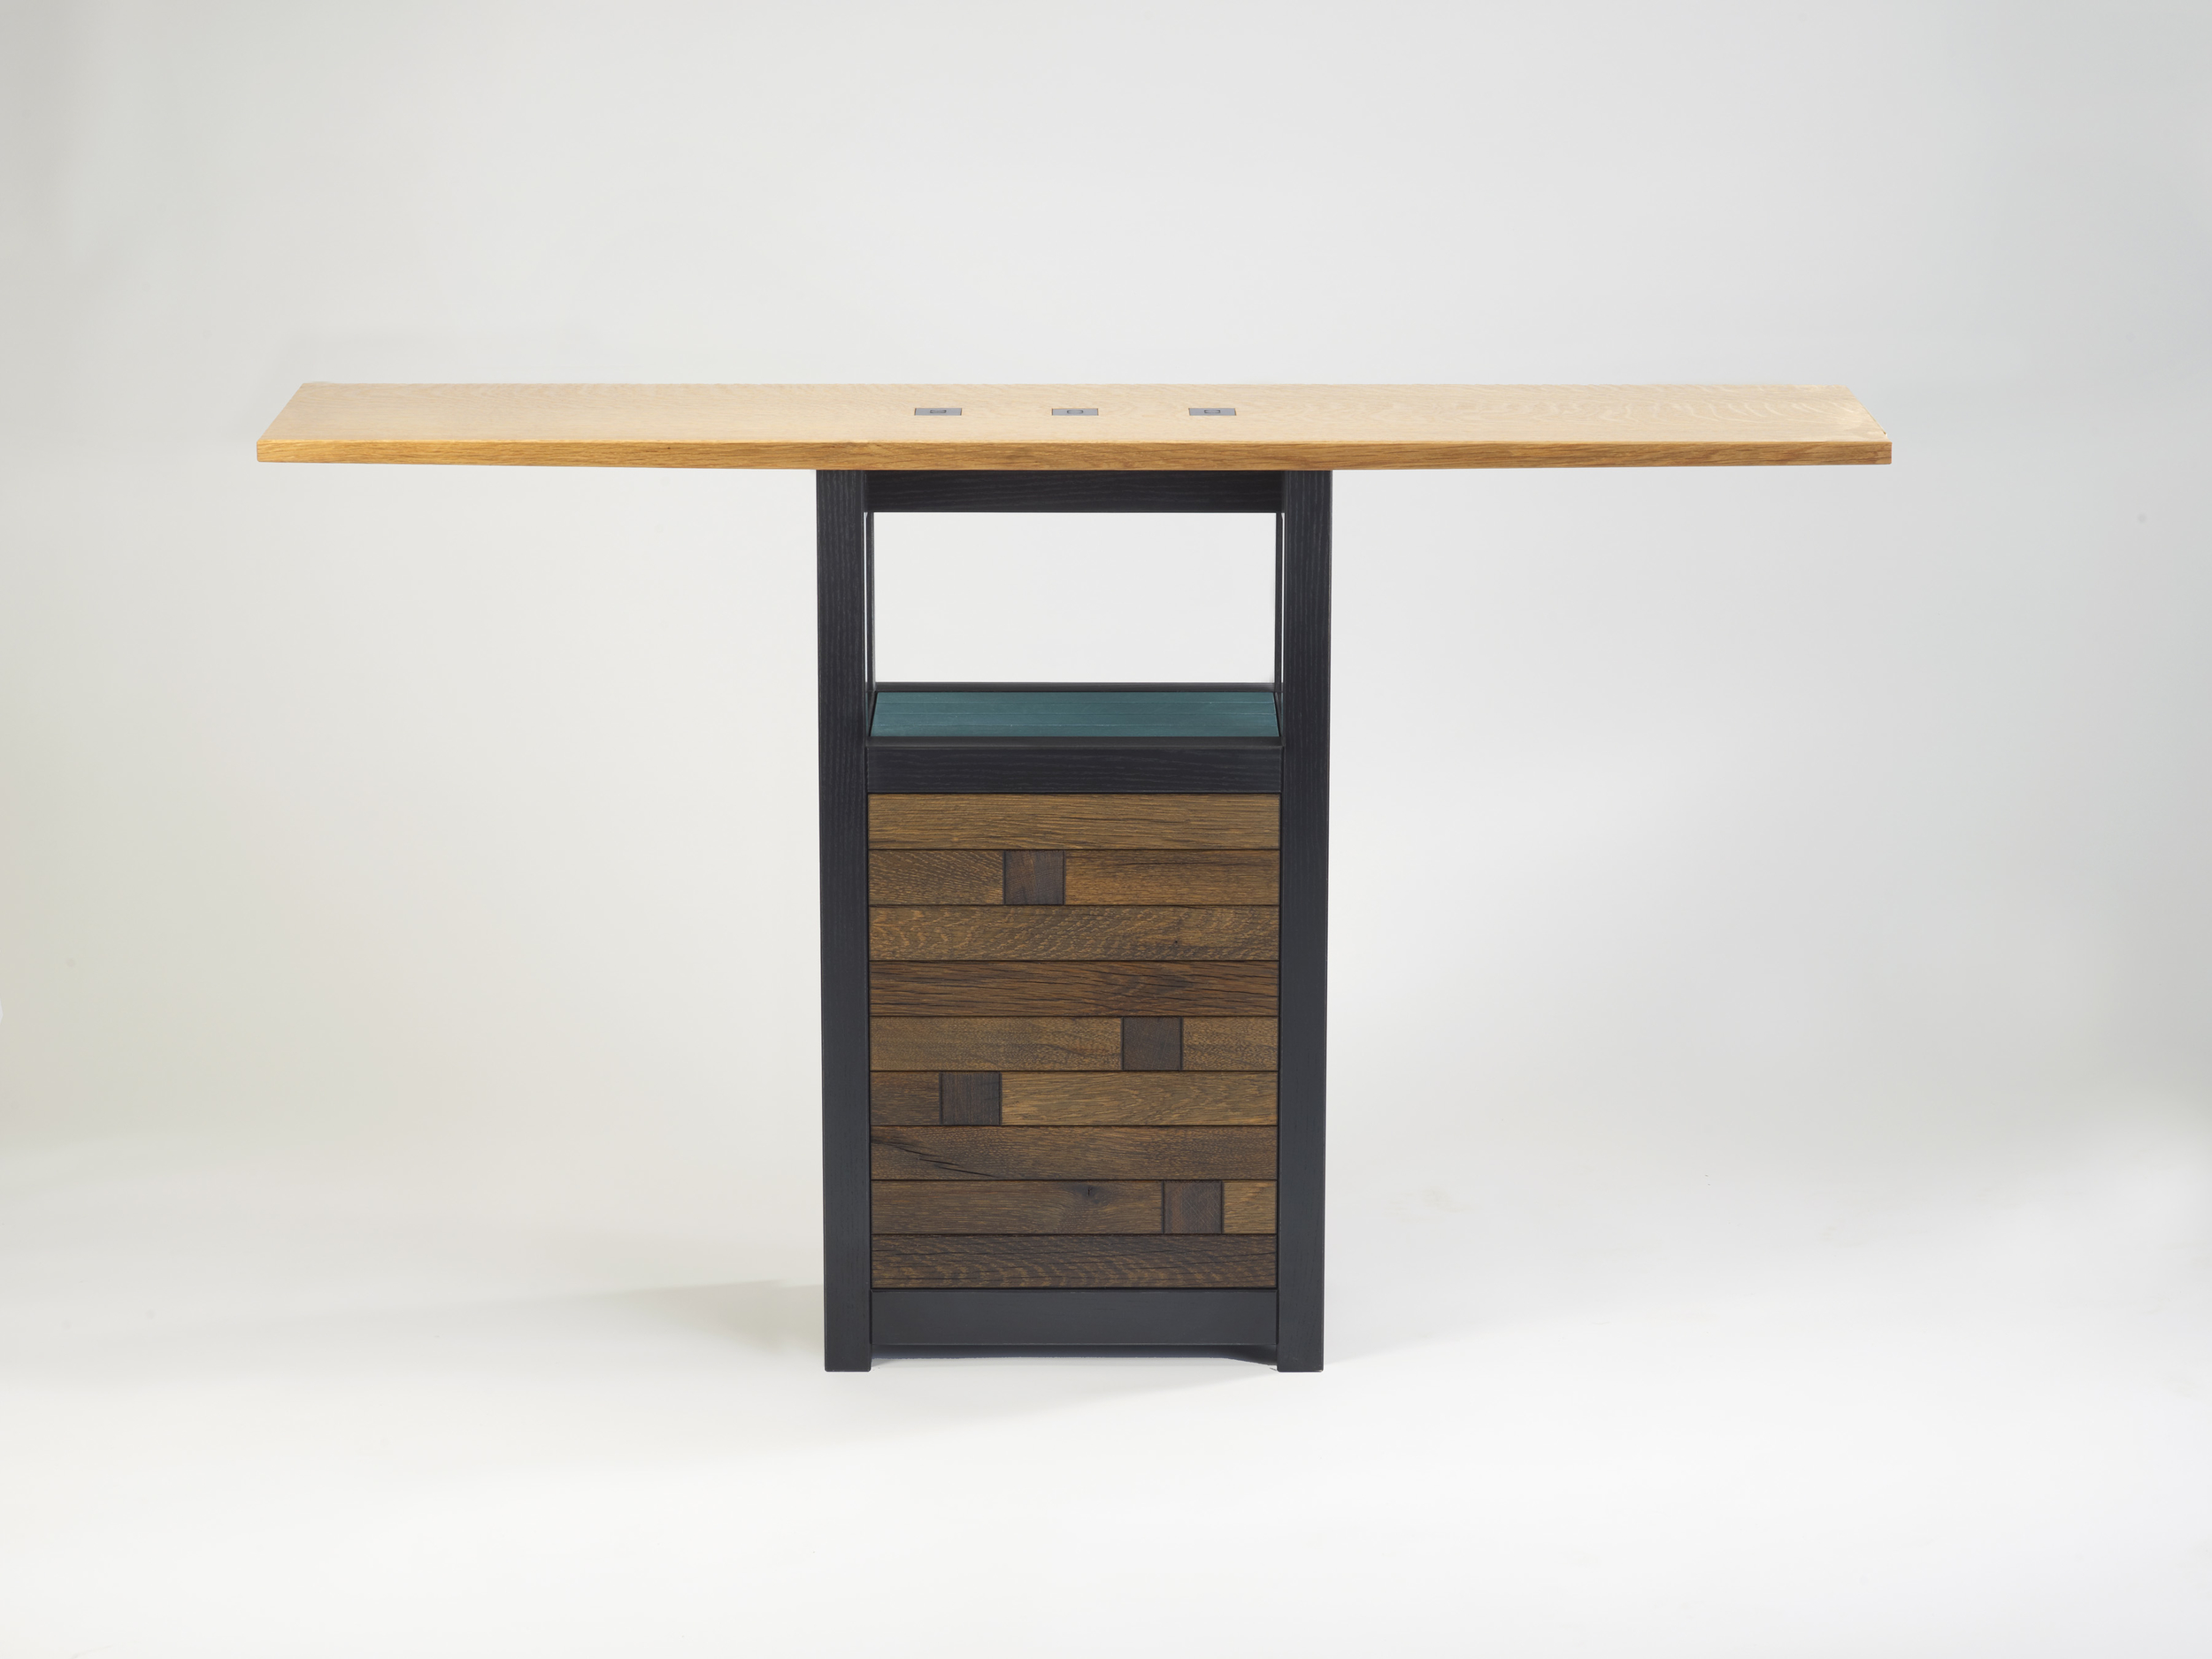 """Spud Point    Gail Fredell, 2012    33"""" high x 12"""" wide x 55"""" long    White oak, painted ash, steel details"""